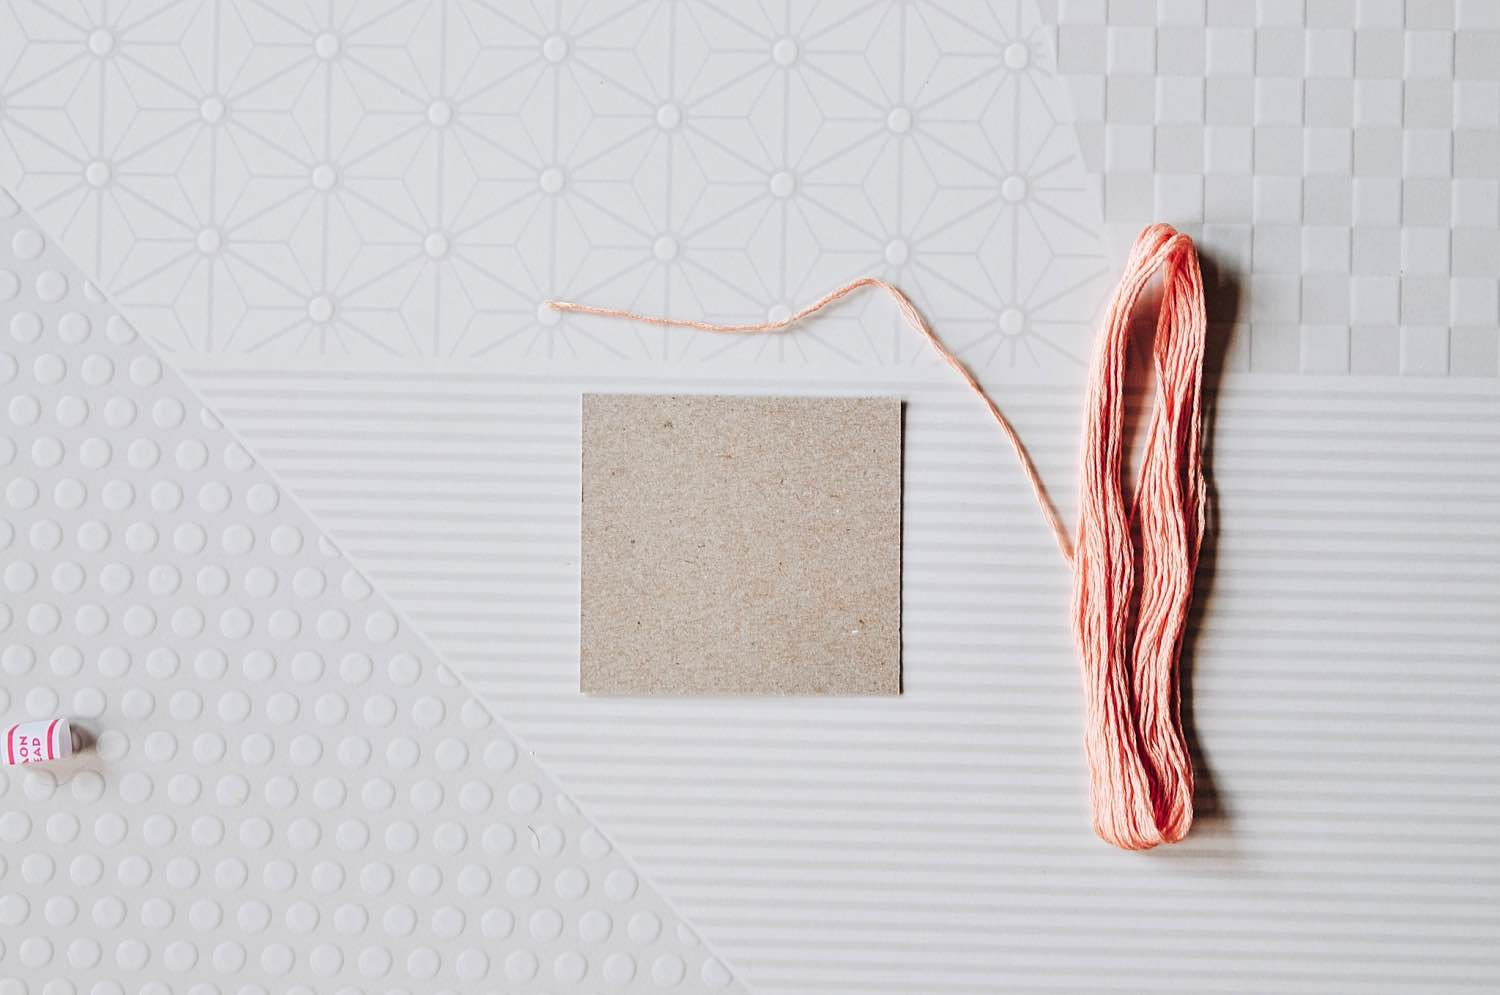 how to make a tassel spool of embroidery thread